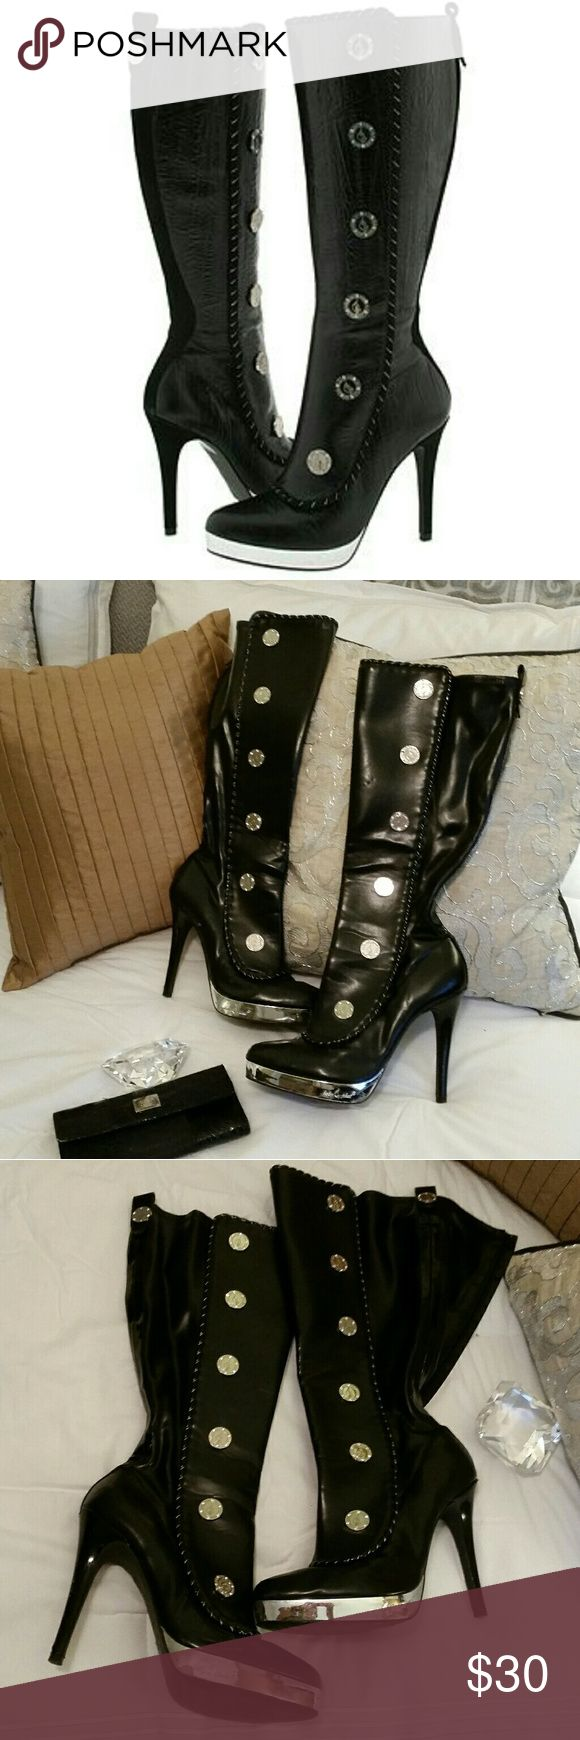 Fabulous Baby Phat Moscow Boots!! 💖 Fabulous Baby Phat Moscow boots!! Faux leather with gorgeous silver decals up the exterior and on back. These boots are pre-loved with some scuffs and wear, but overall they are still in decent condition. Baby Phat Shoes Heeled Boots